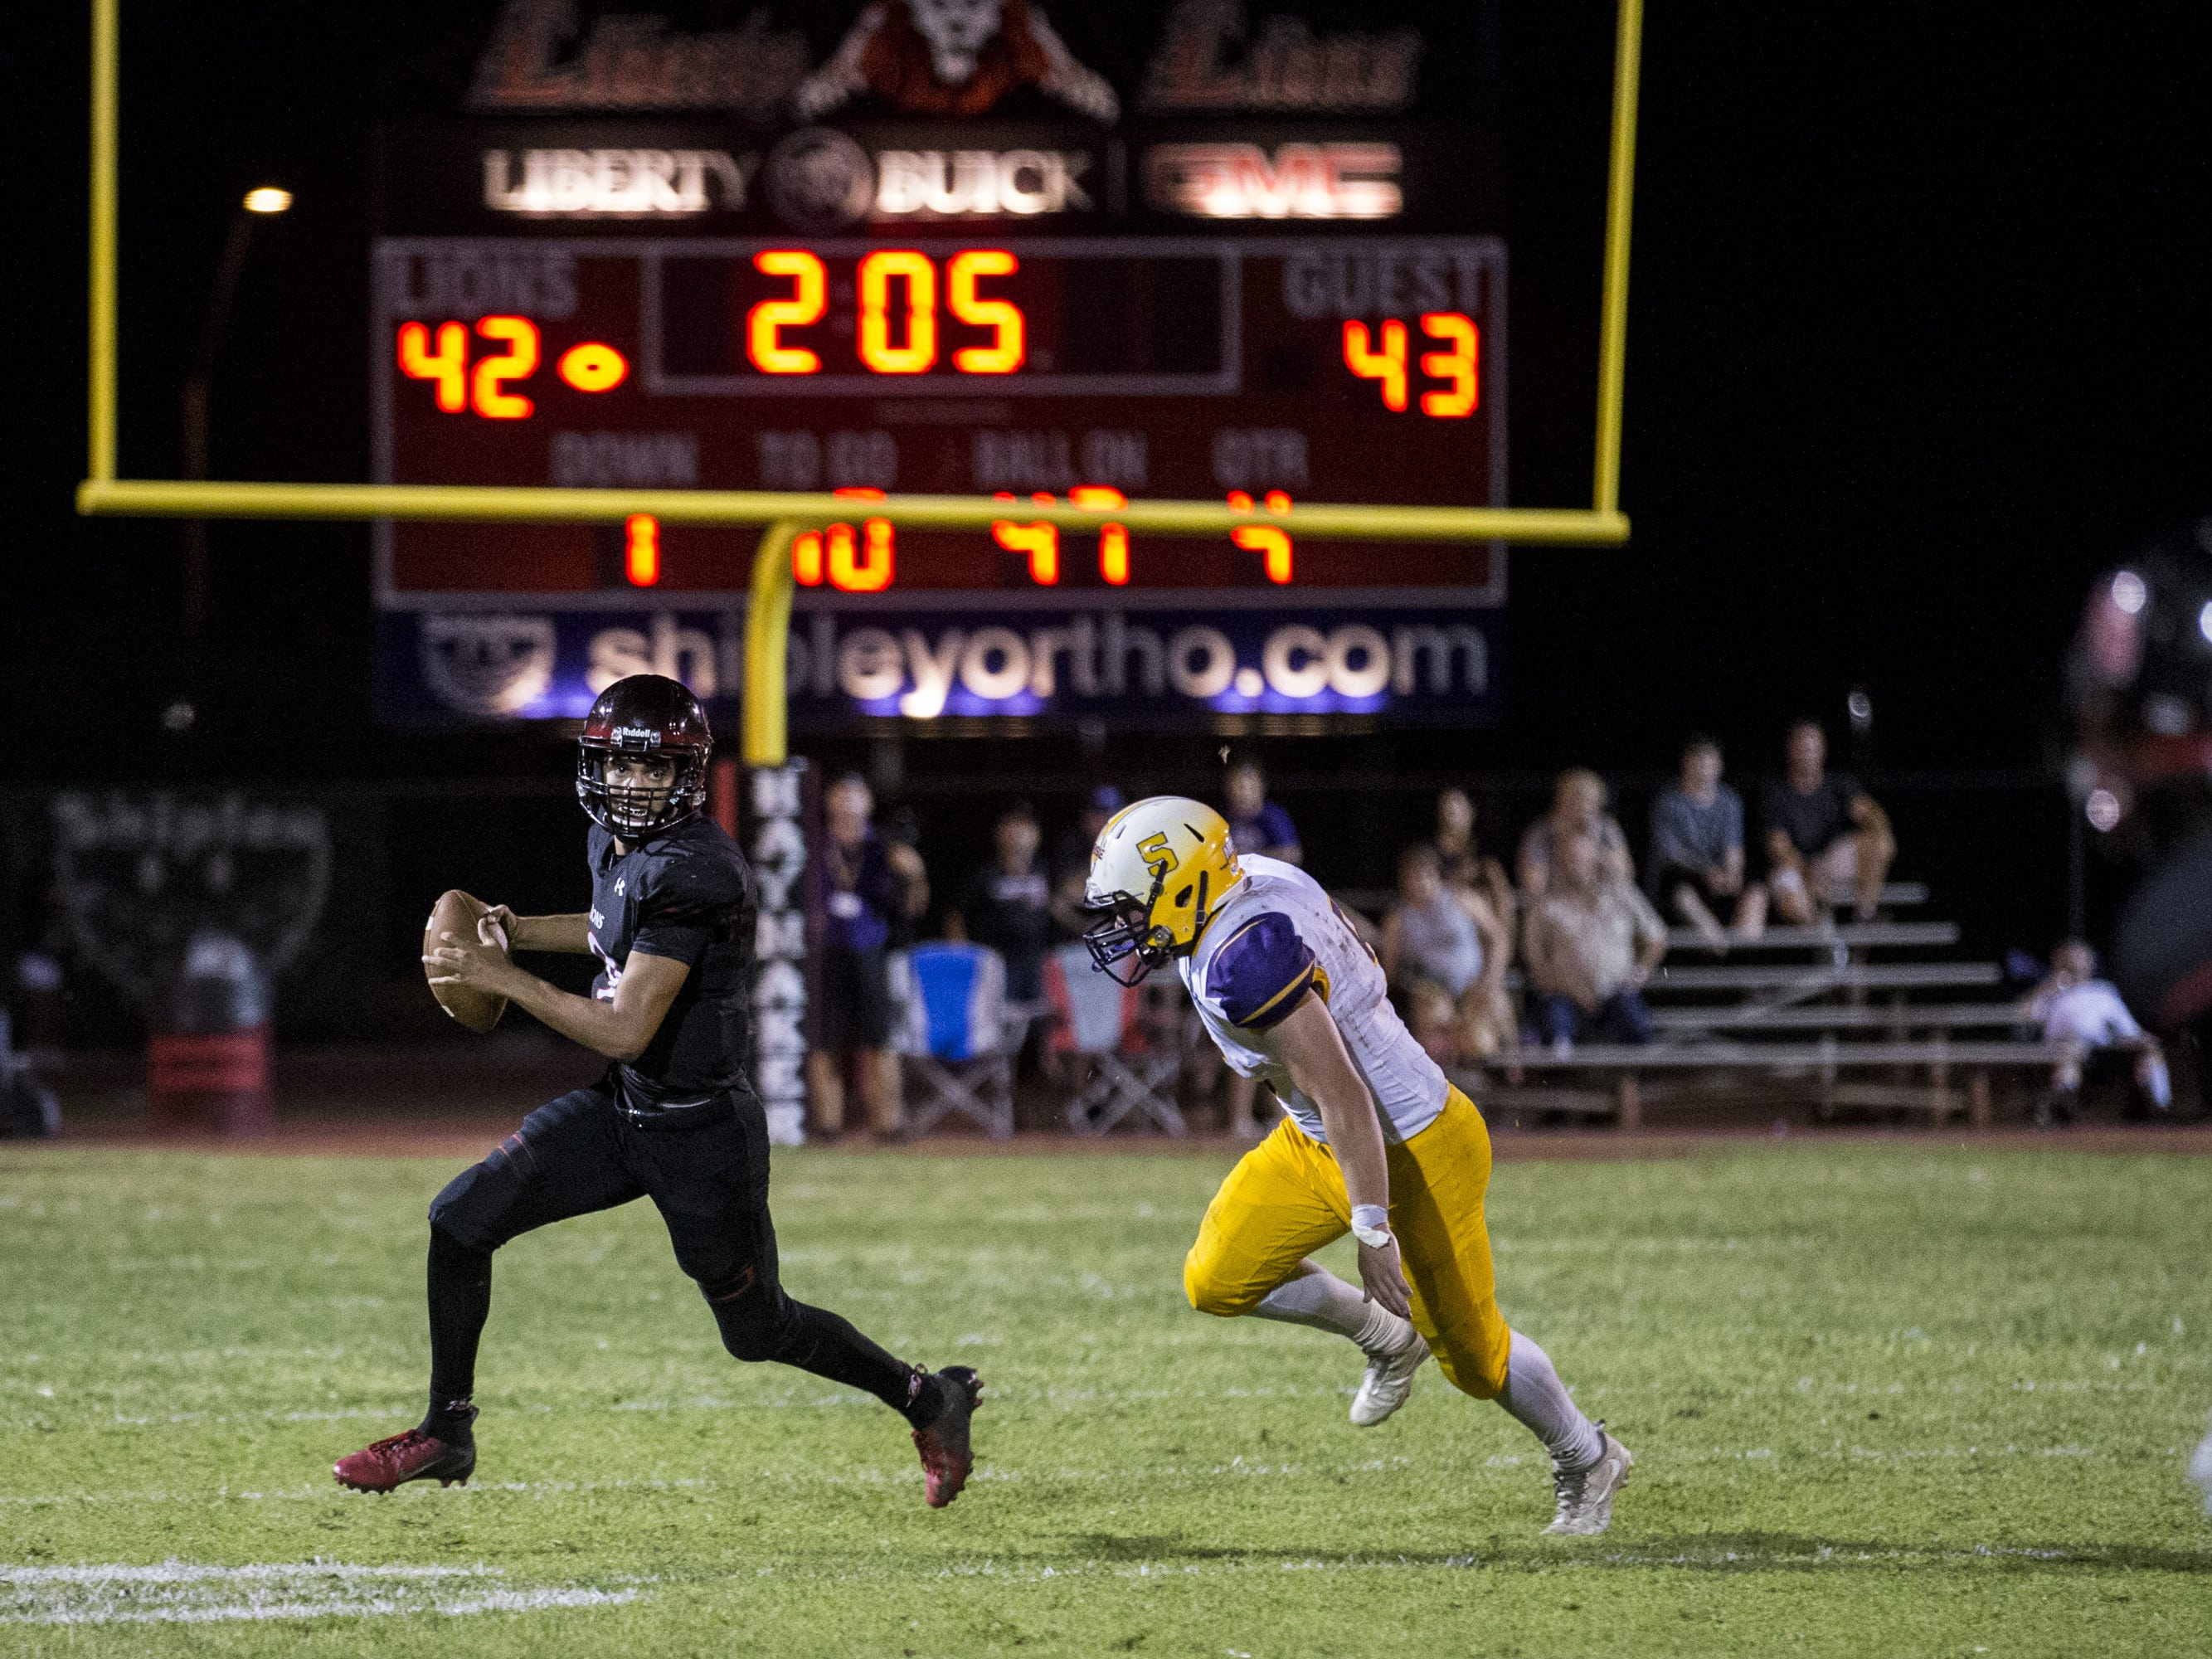 Liberty's Jonah Guevara looks to pass against Sunrise Mountain in the 4th quarter on Friday, Aug. 31, 2018, at Liberty High School in Peoria, Ariz.  #azhsfb